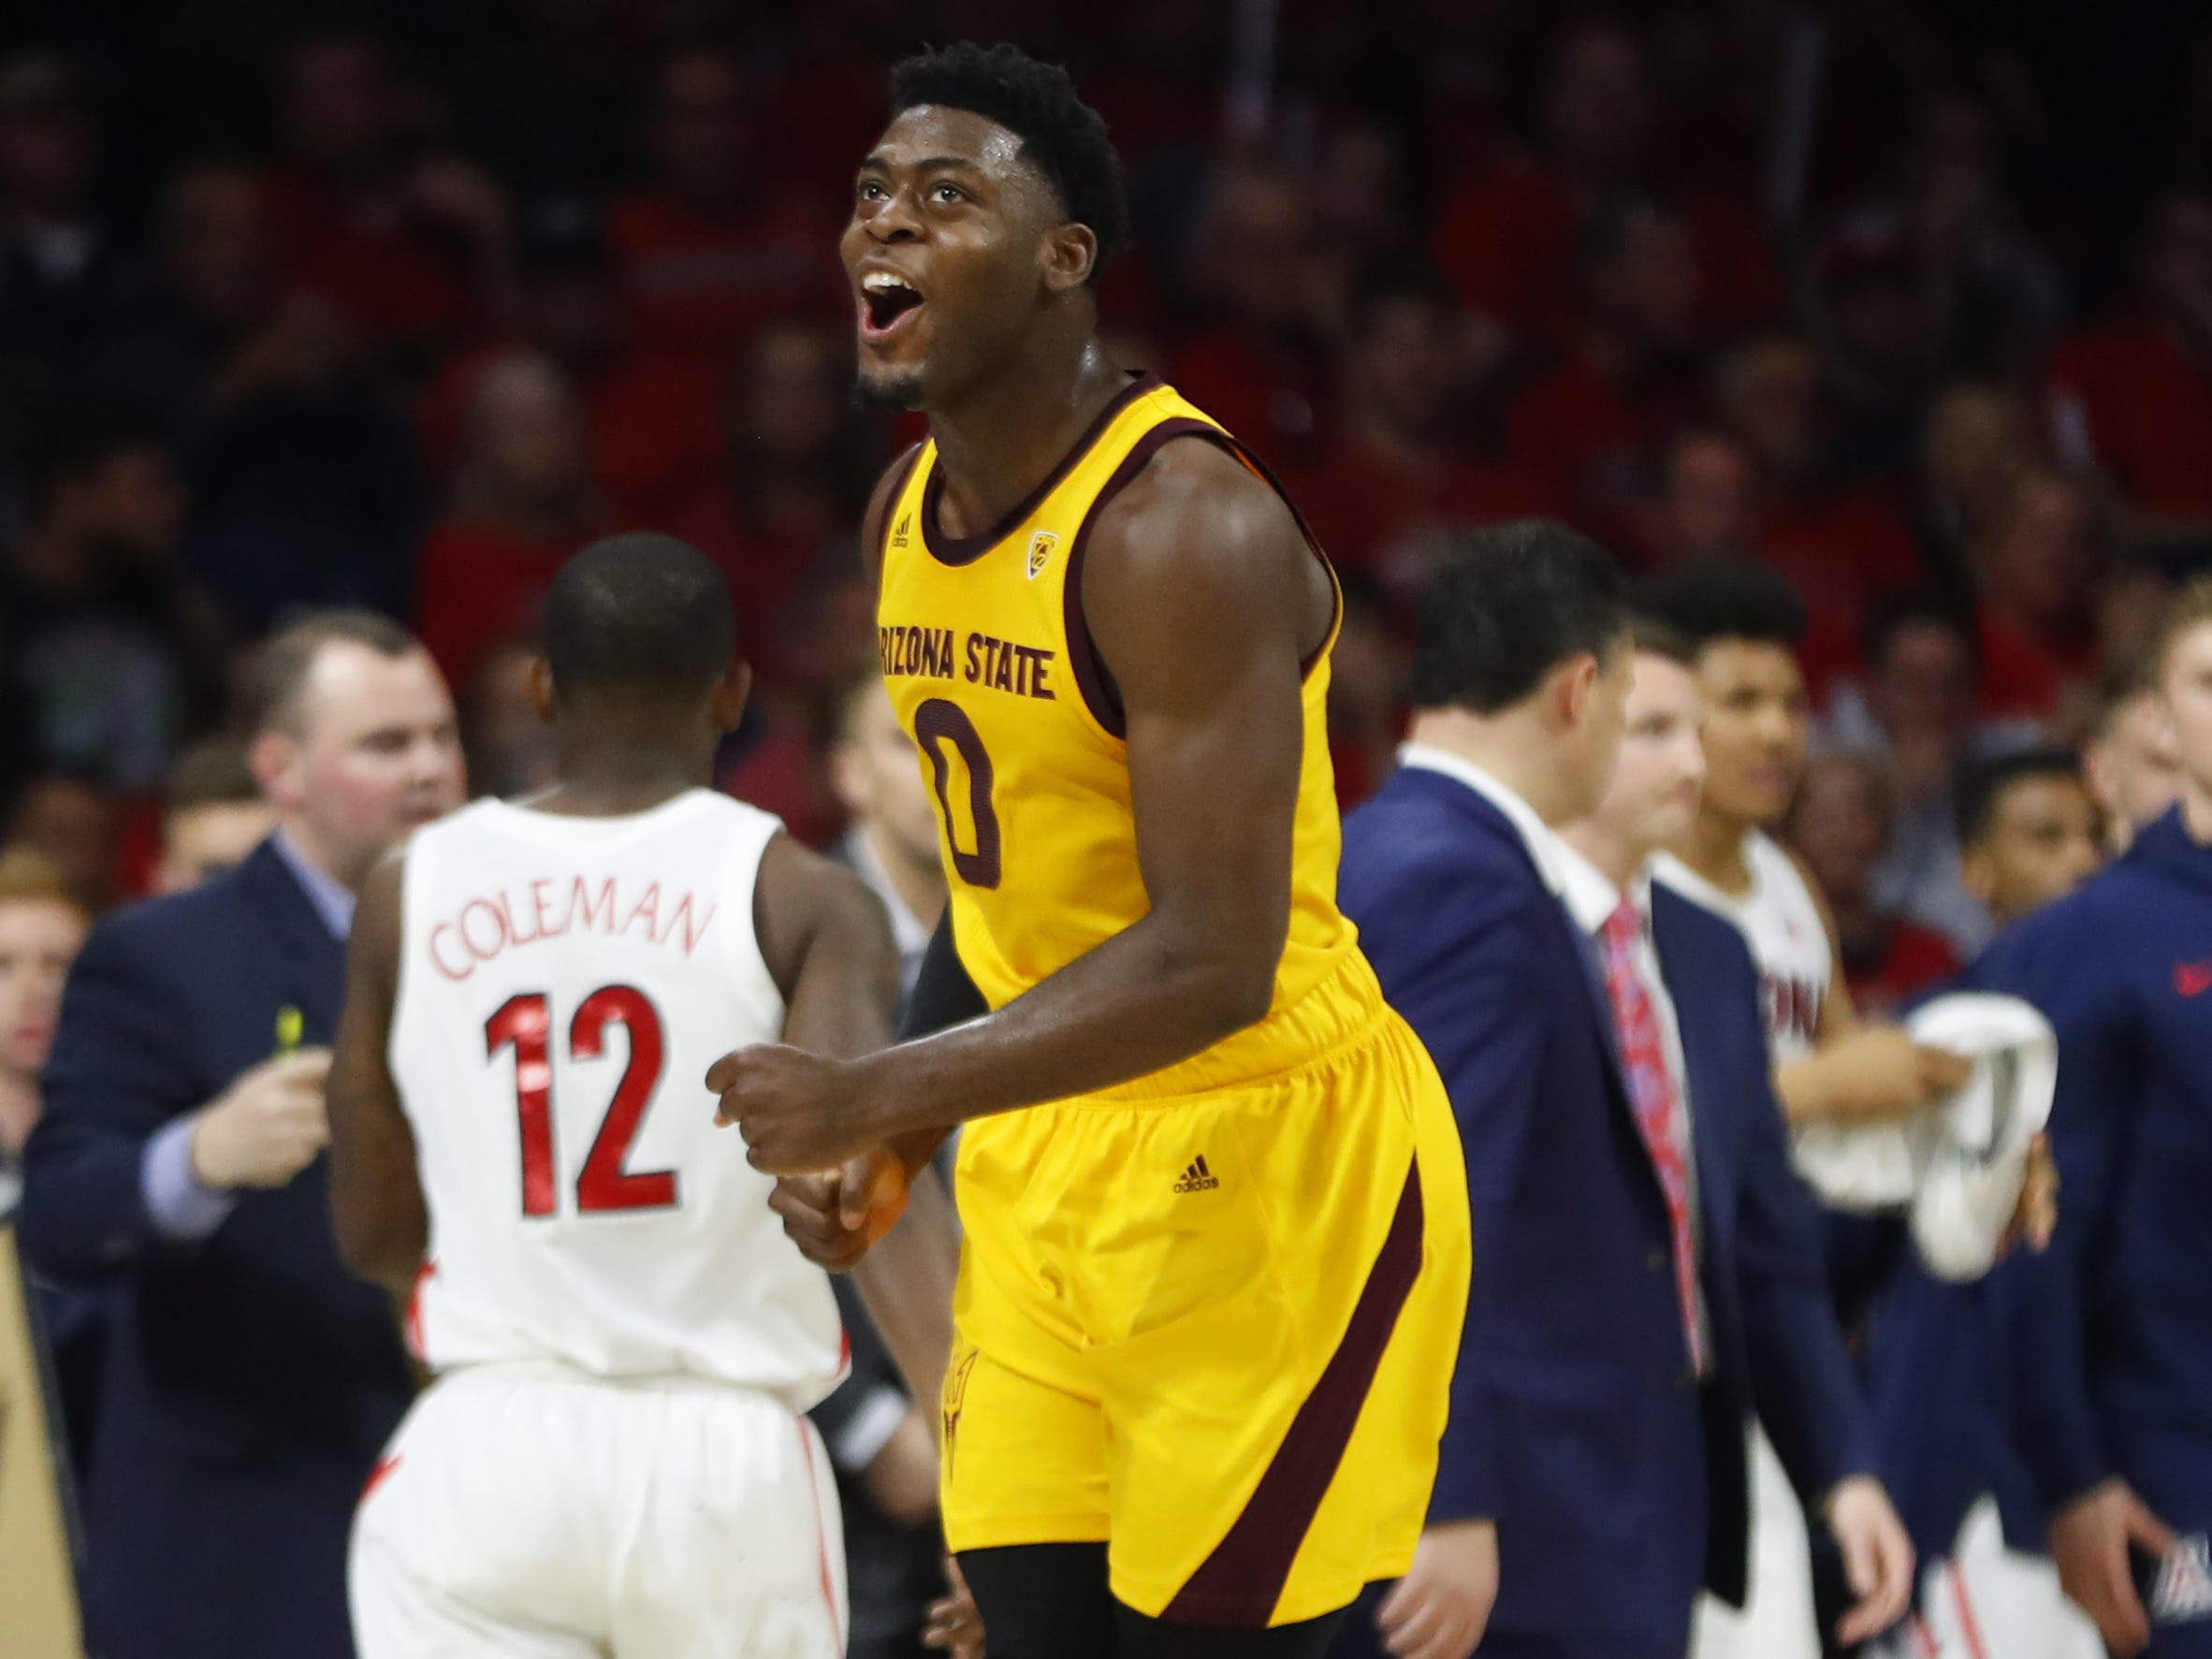 ASU's Luguentz Dort (0) celebrates a dunk against Arizona during the second half at the McKale Memorial Center in Tucson, Ariz. on March 9, 2019.